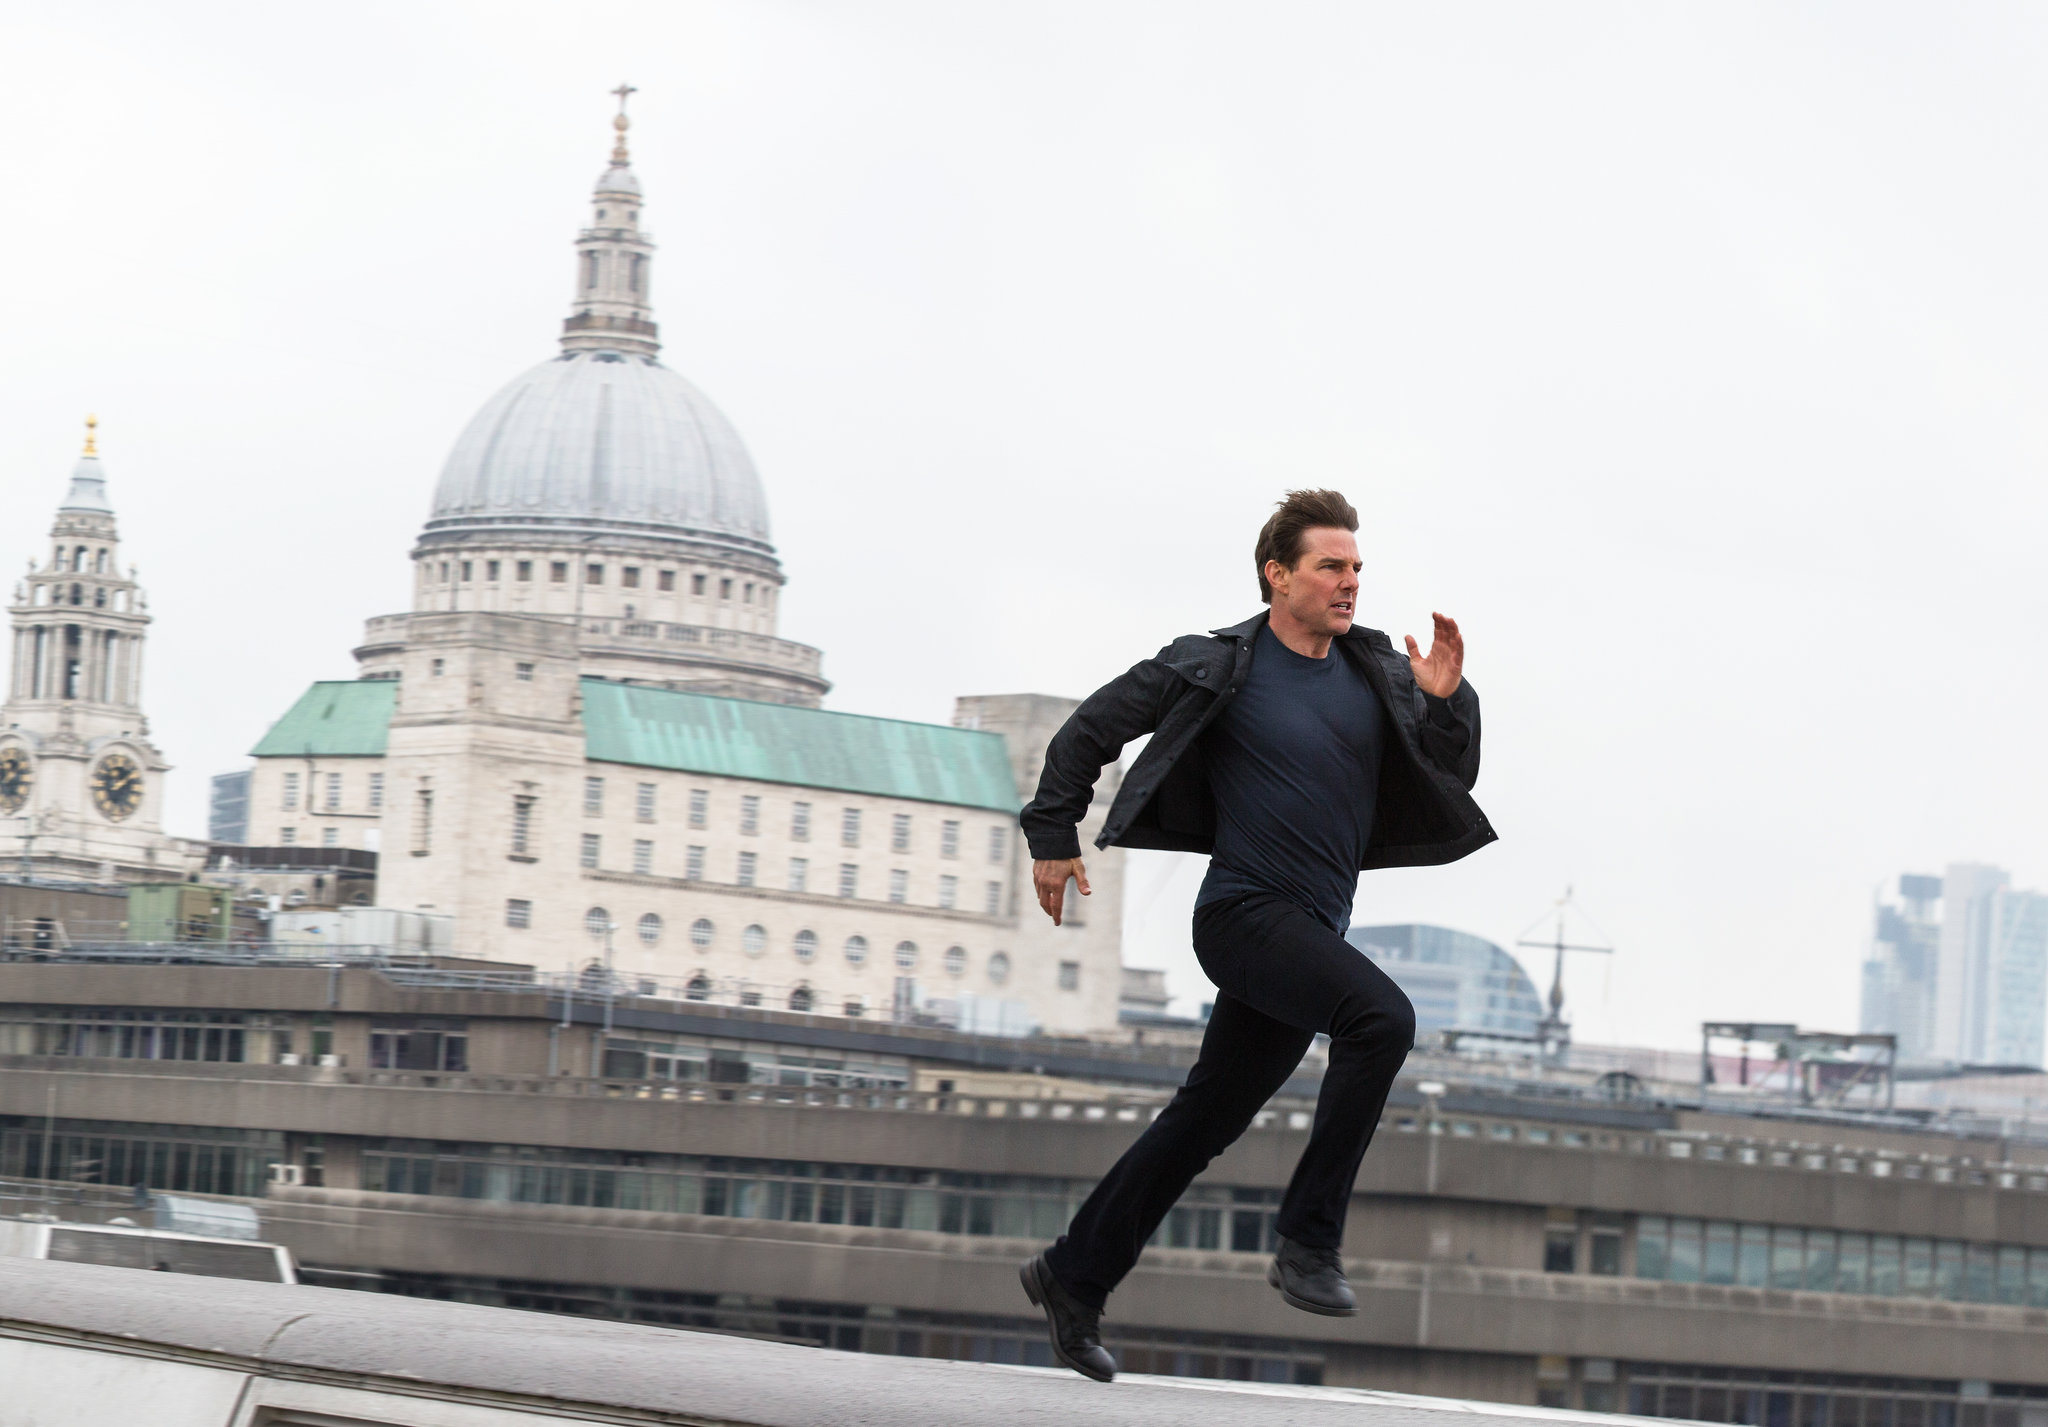 The 'Mission: Impossible' franchise starring Tom Cruise is one of America's most successful action spy films raking in $3.57 billion [NY Times]